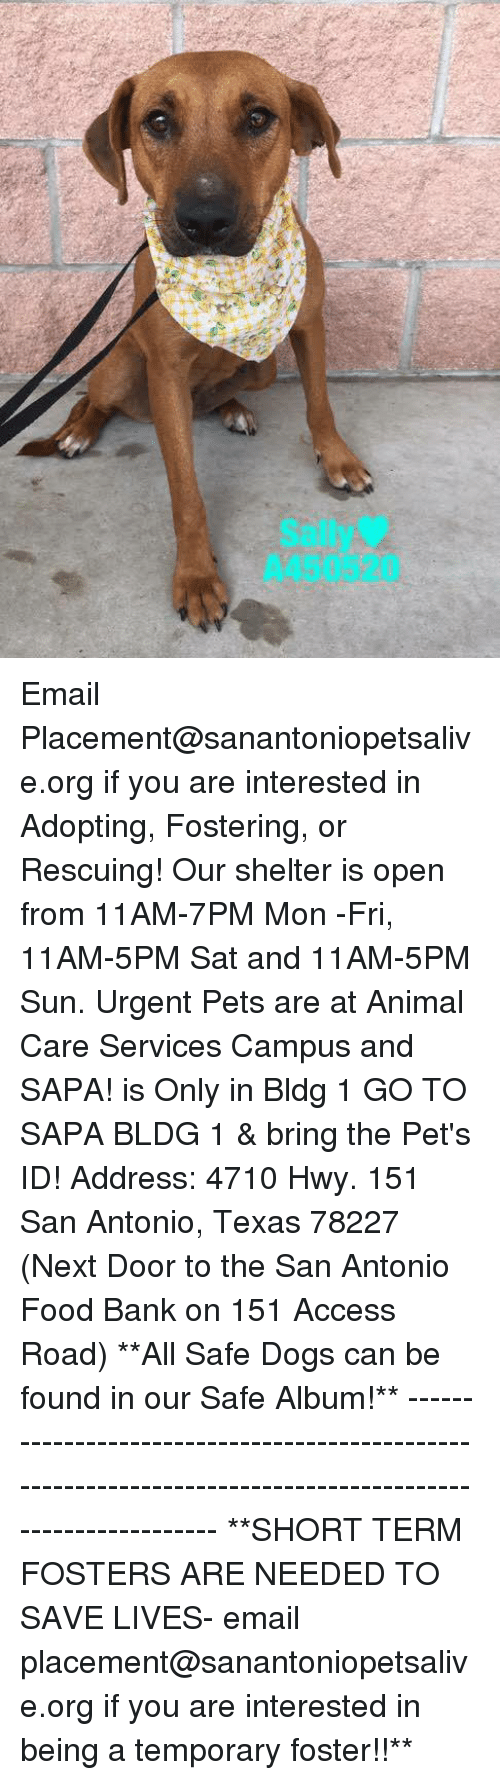 Dogs, Food, and Memes: Sally  A450520 Email Placement@sanantoniopetsalive.org if you are interested in Adopting, Fostering, or Rescuing!  Our shelter is open from 11AM-7PM Mon -Fri, 11AM-5PM Sat and 11AM-5PM Sun.  Urgent Pets are at Animal Care Services Campus and SAPA! is Only in Bldg 1 GO TO SAPA BLDG 1 & bring the Pet's ID! Address: 4710 Hwy. 151 San Antonio, Texas 78227 (Next Door to the San Antonio Food Bank on 151 Access Road)  **All Safe Dogs can be found in our Safe Album!** ---------------------------------------------------------------------------------------------------------- **SHORT TERM FOSTERS ARE NEEDED TO SAVE LIVES- email placement@sanantoniopetsalive.org if you are interested in being a temporary foster!!**